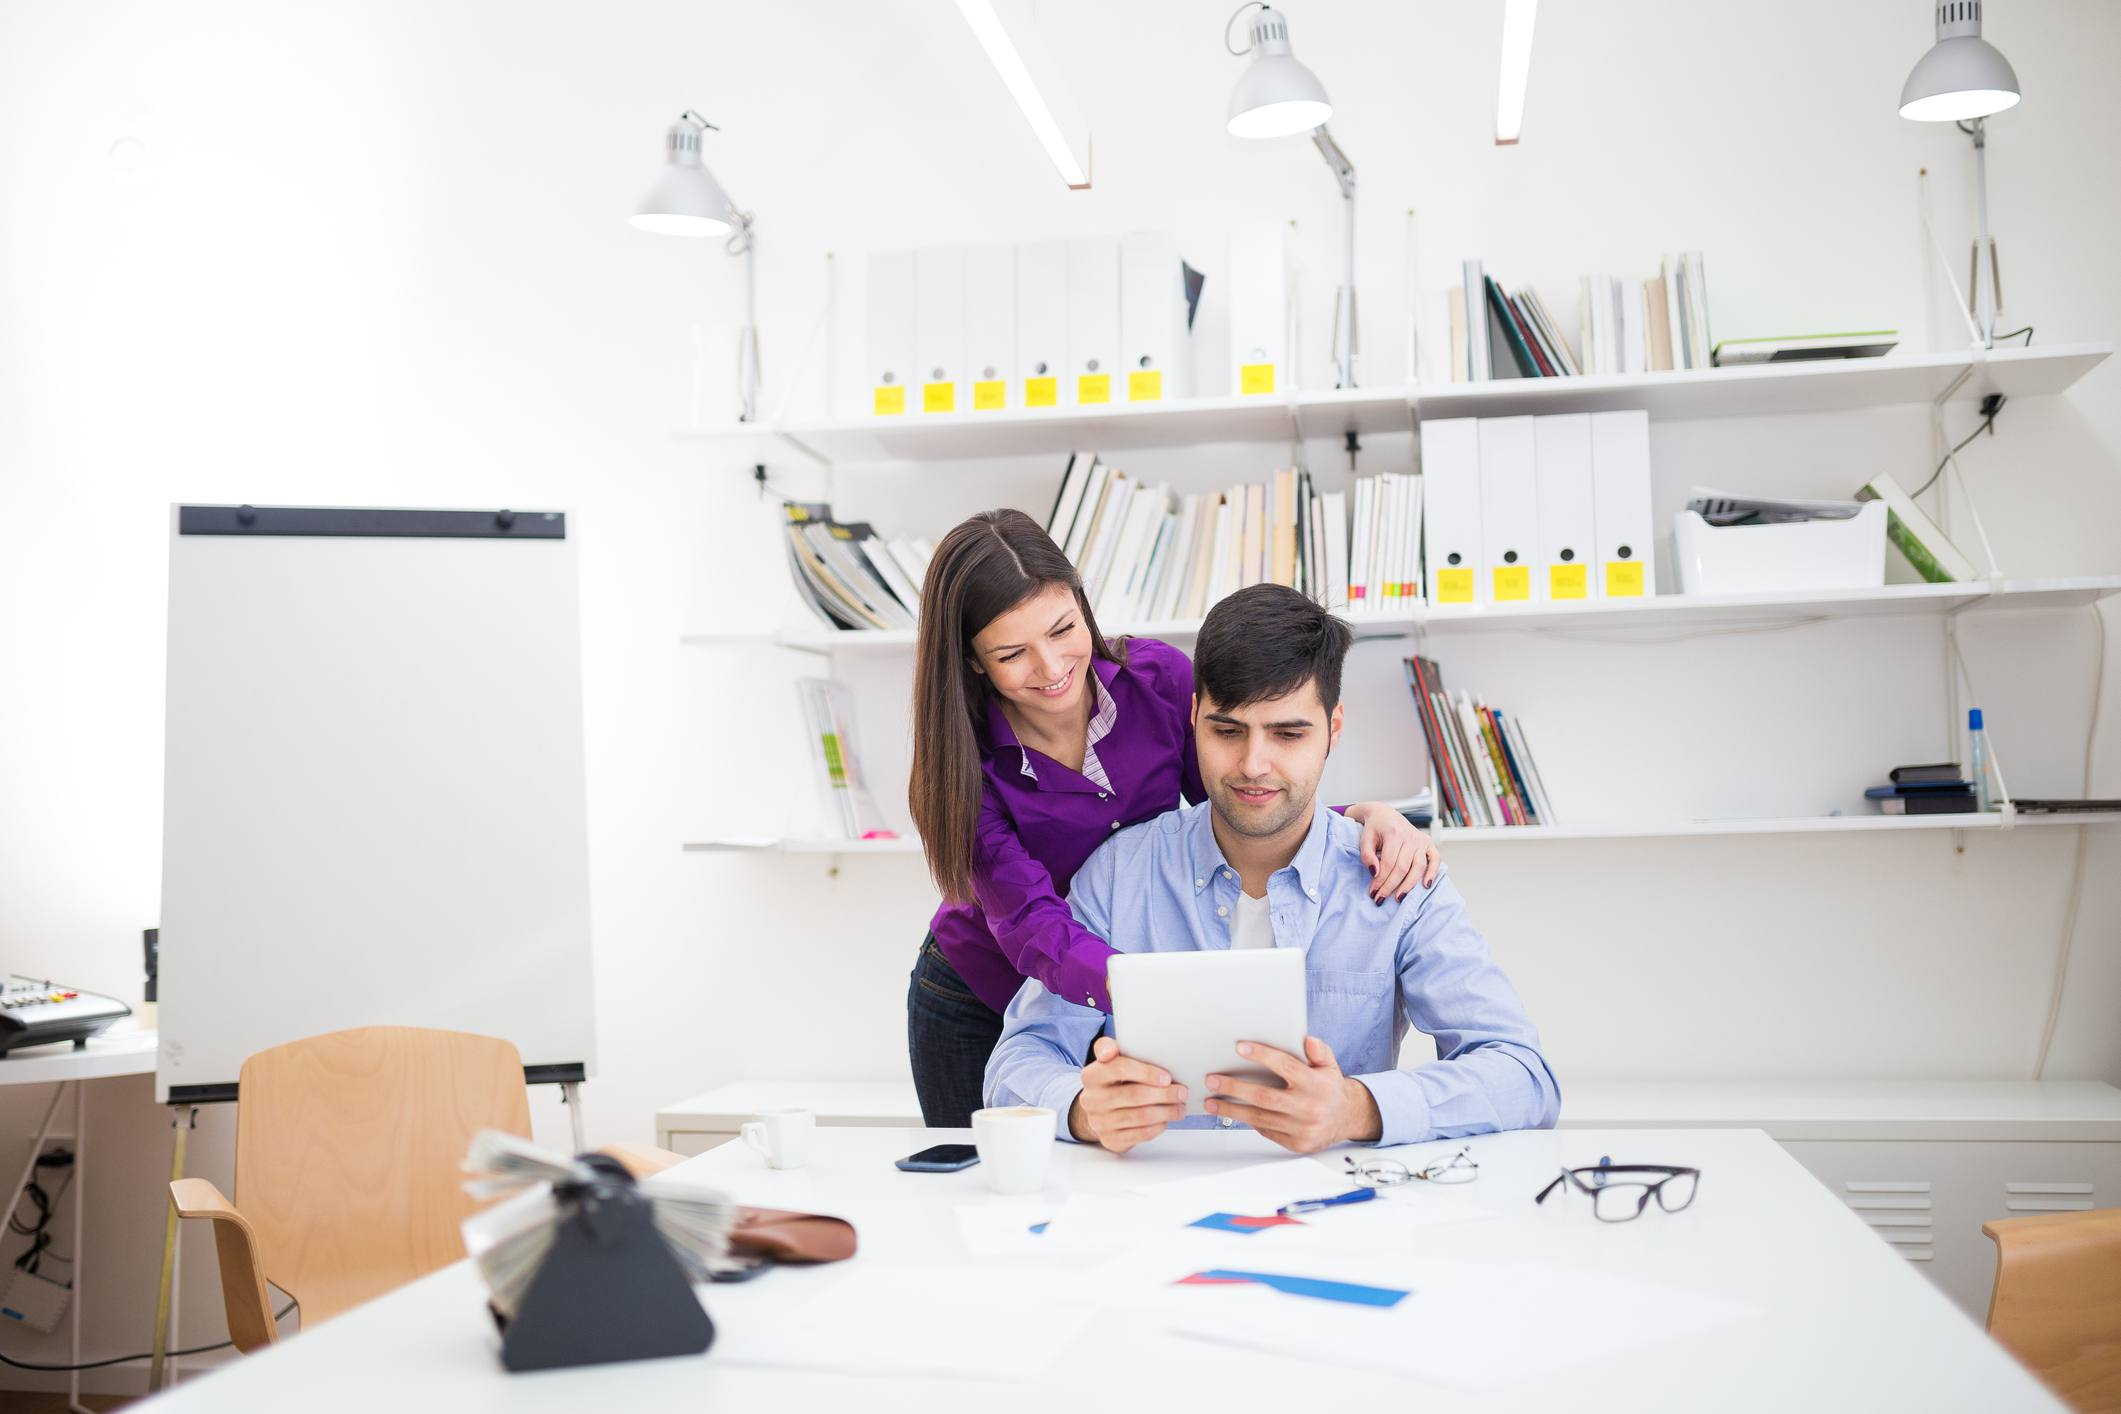 boss flirting with coworker